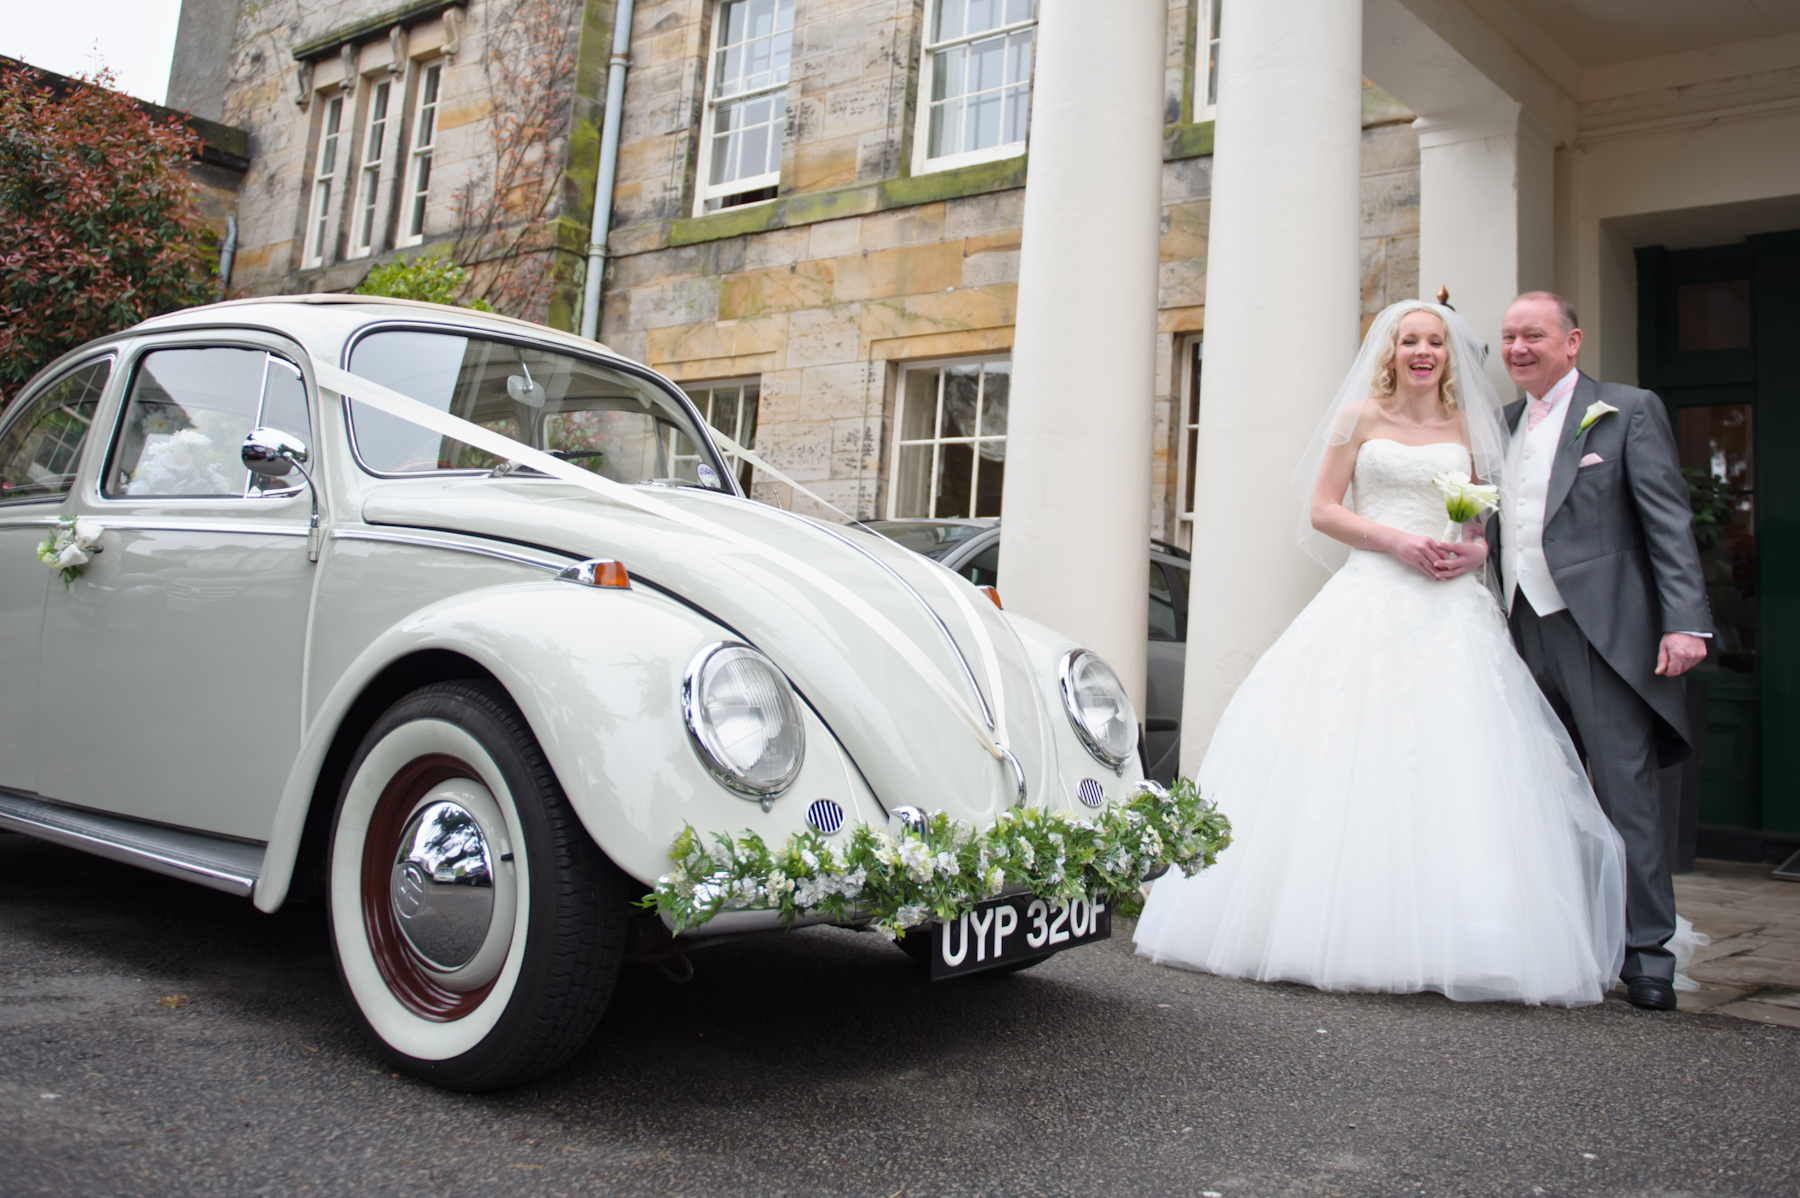 Wedding car hire the wedding dolls helen started using pootles to chauffeur other couples on their big day and has been pootling to fabulous weddings for the past 3 years junglespirit Gallery